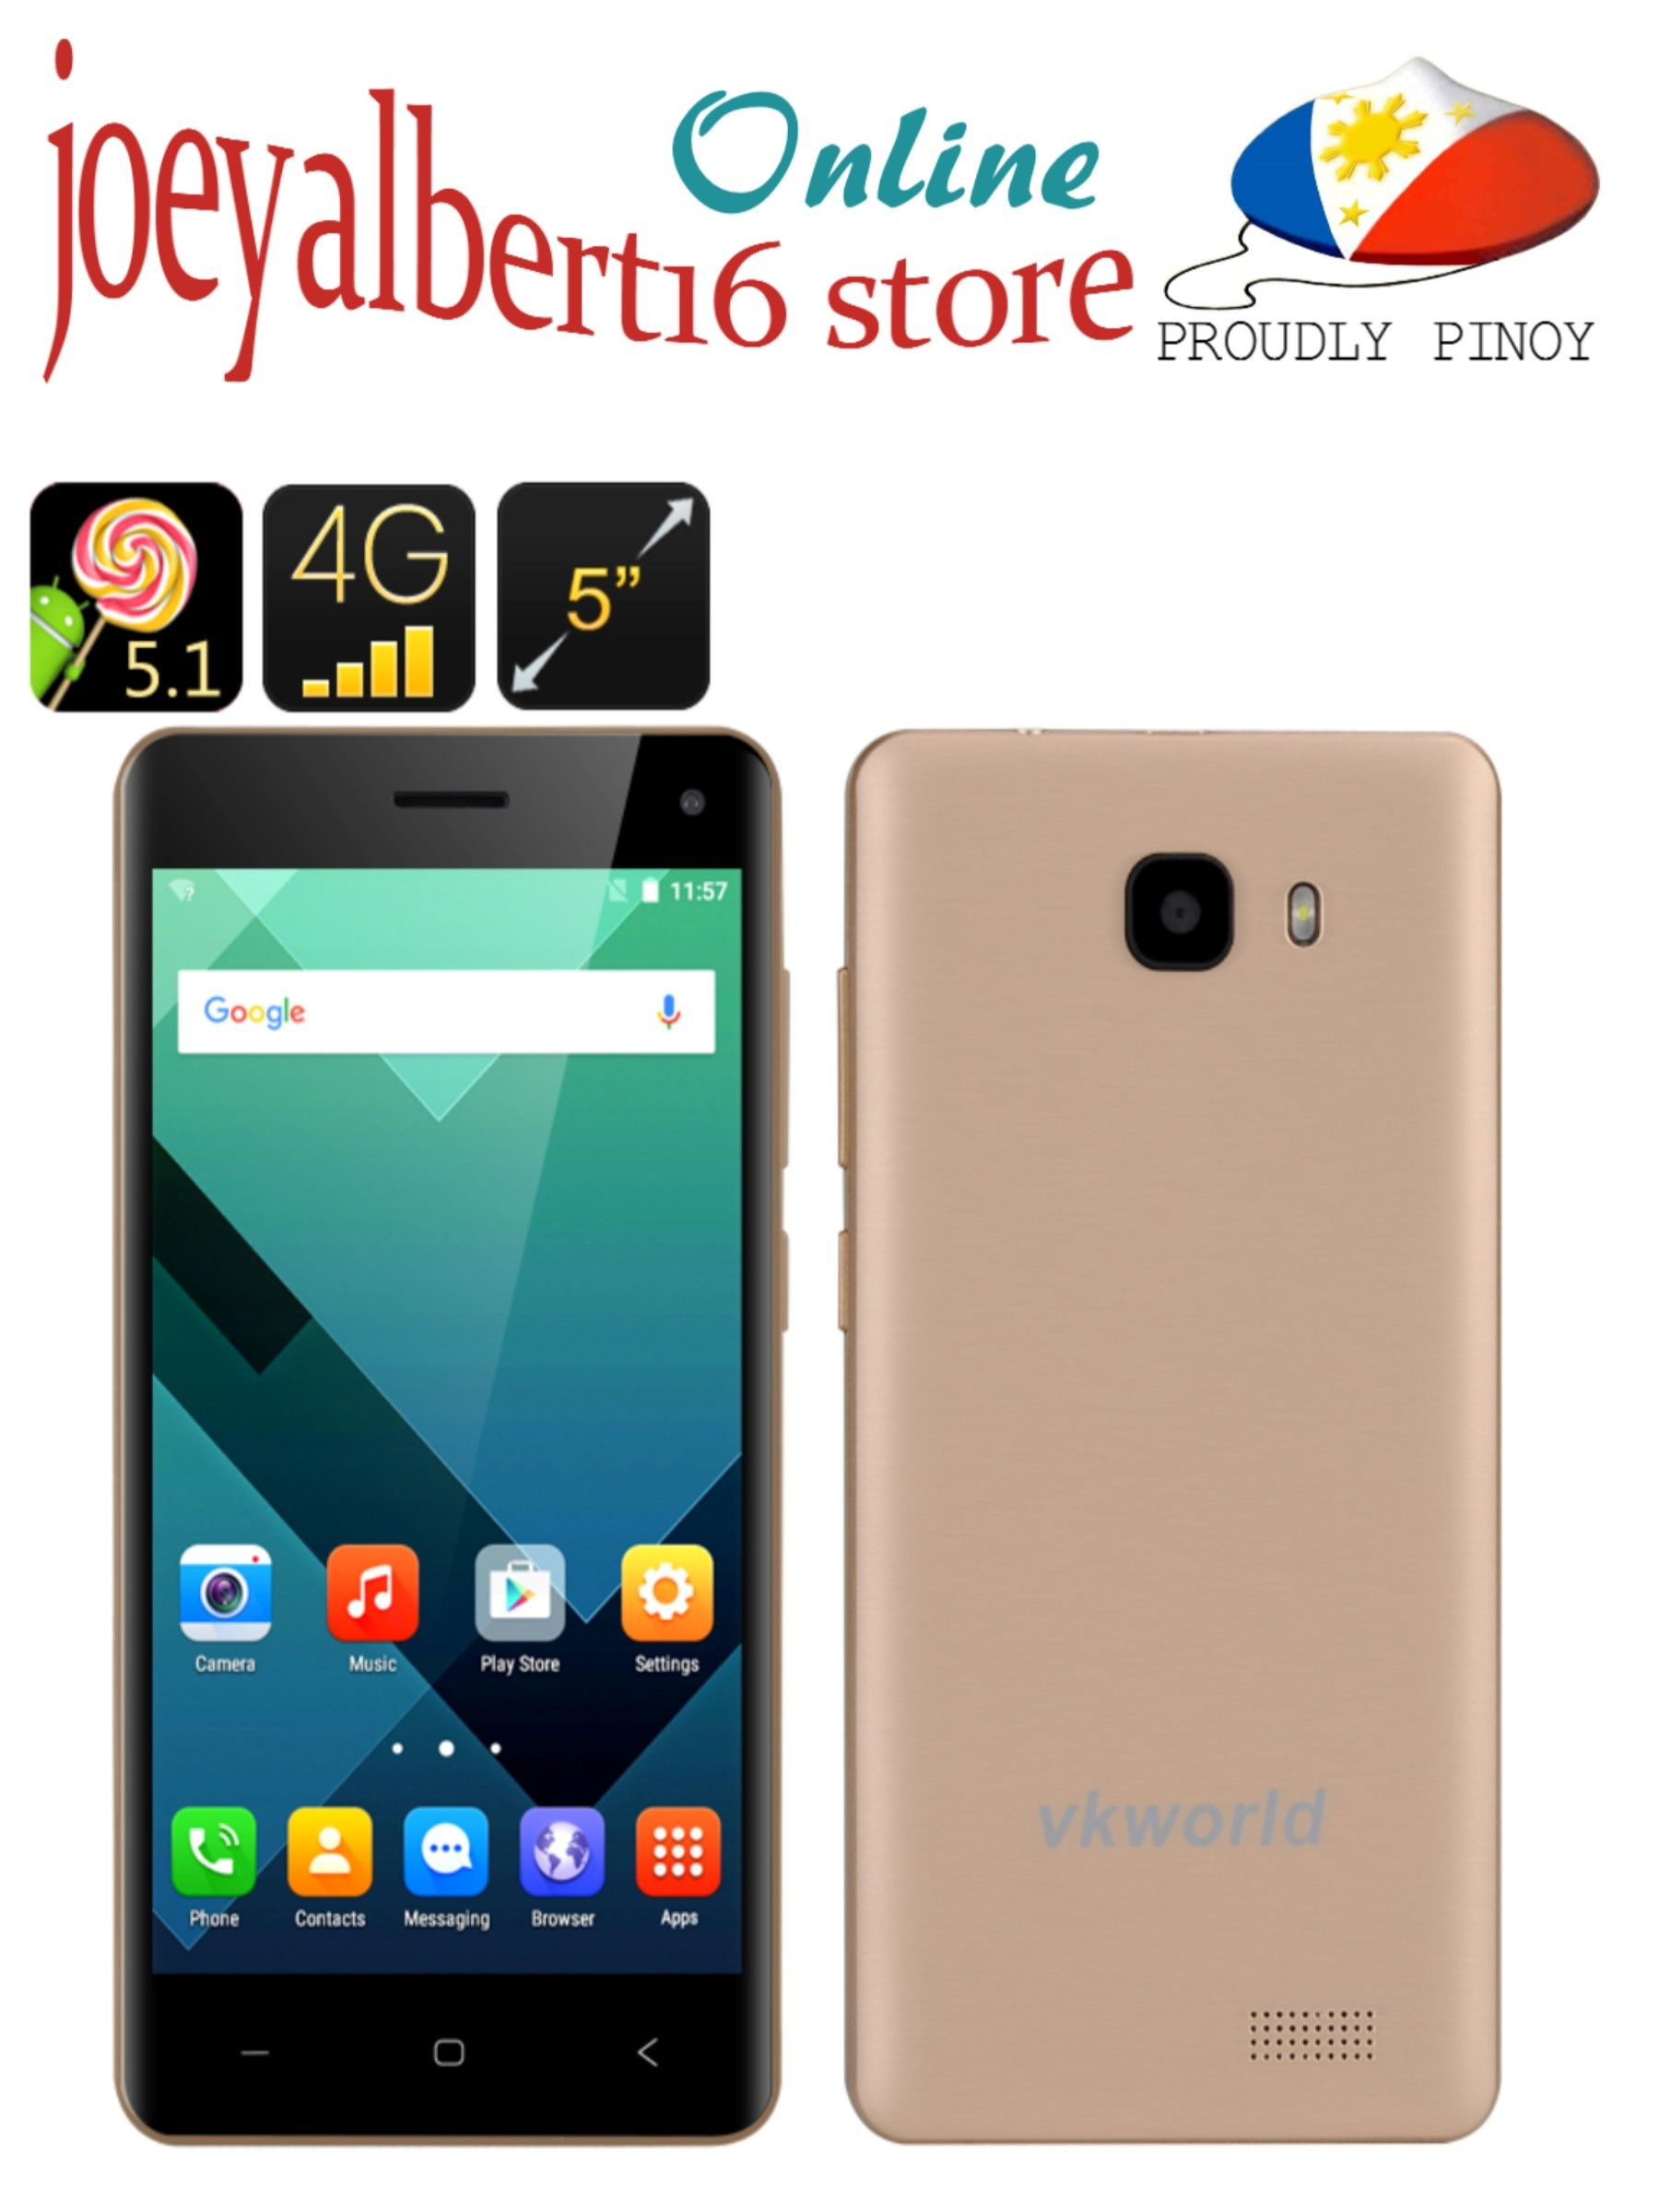 Vkworld t5 se smartphone 5 inch hd screen android 51 4g3g2g vkworld t5 se smartphone 5 inch hd screen android 51 4g fandeluxe Images